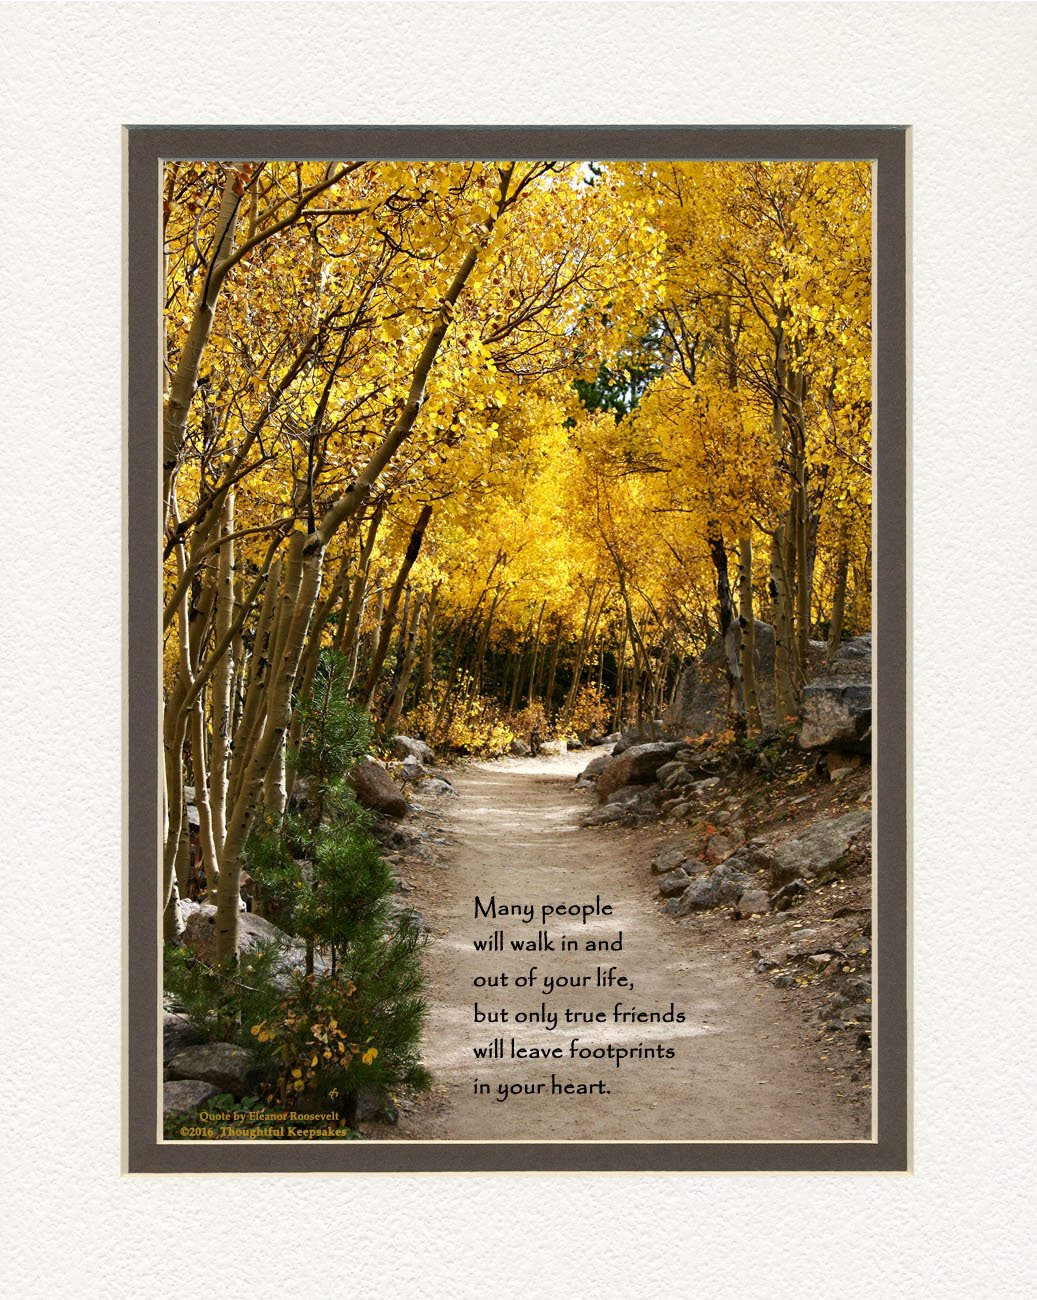 Special Gift for Friend. Aspen Path with ''Many People Will Walk in and Out of Your Life, but Only True Friends Will Leave Footprints in Your Heart.'' Friendship or Best Friend Gift, Birthday, Christmas